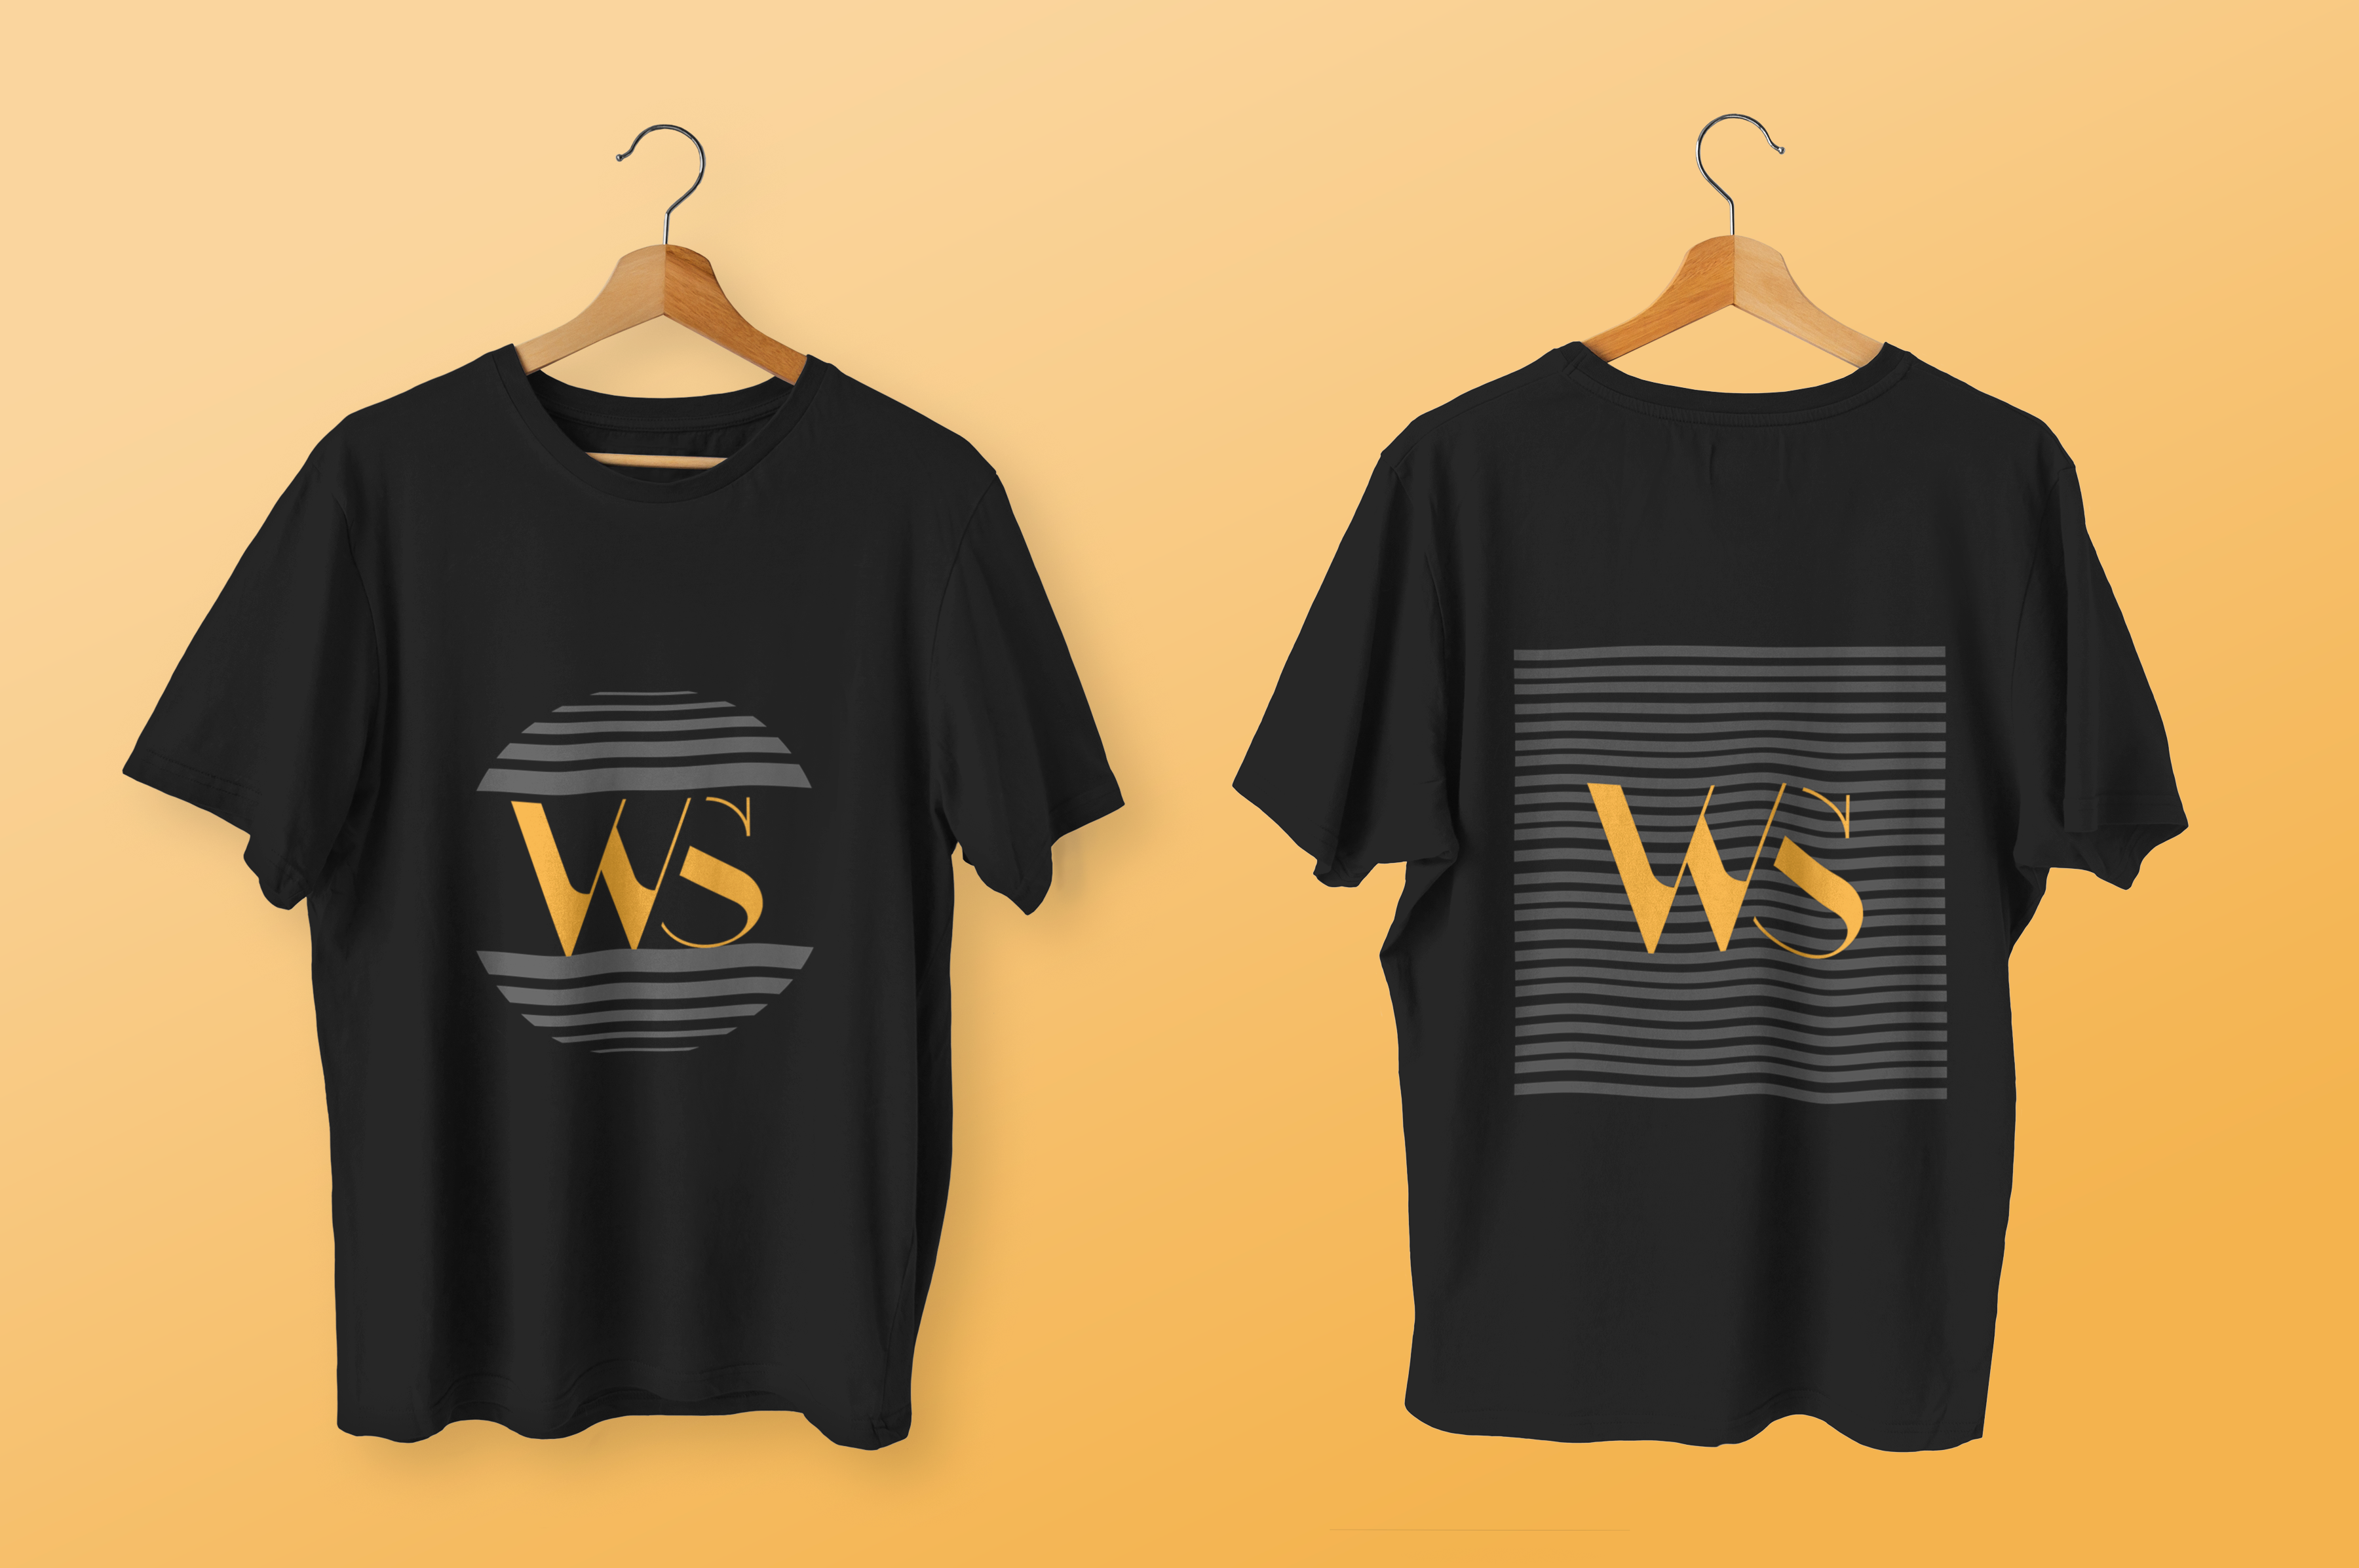 Black_T_Shirts_Front_and_Back_View_Mockup